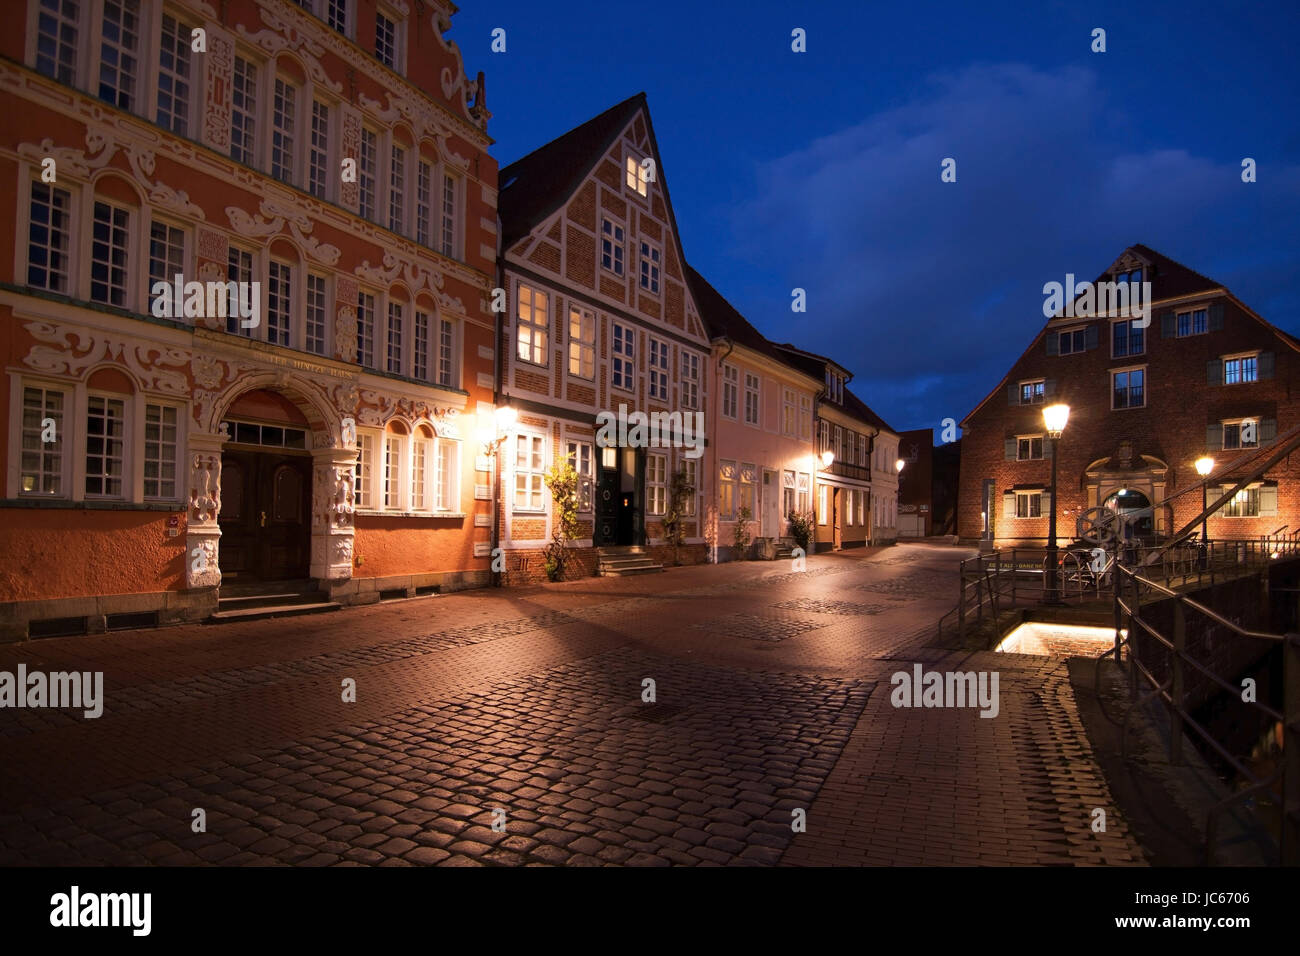 The Hanseatic town Stade is the capital town of the administrative district of the same name in Lower Saxony., Die Stock Photo